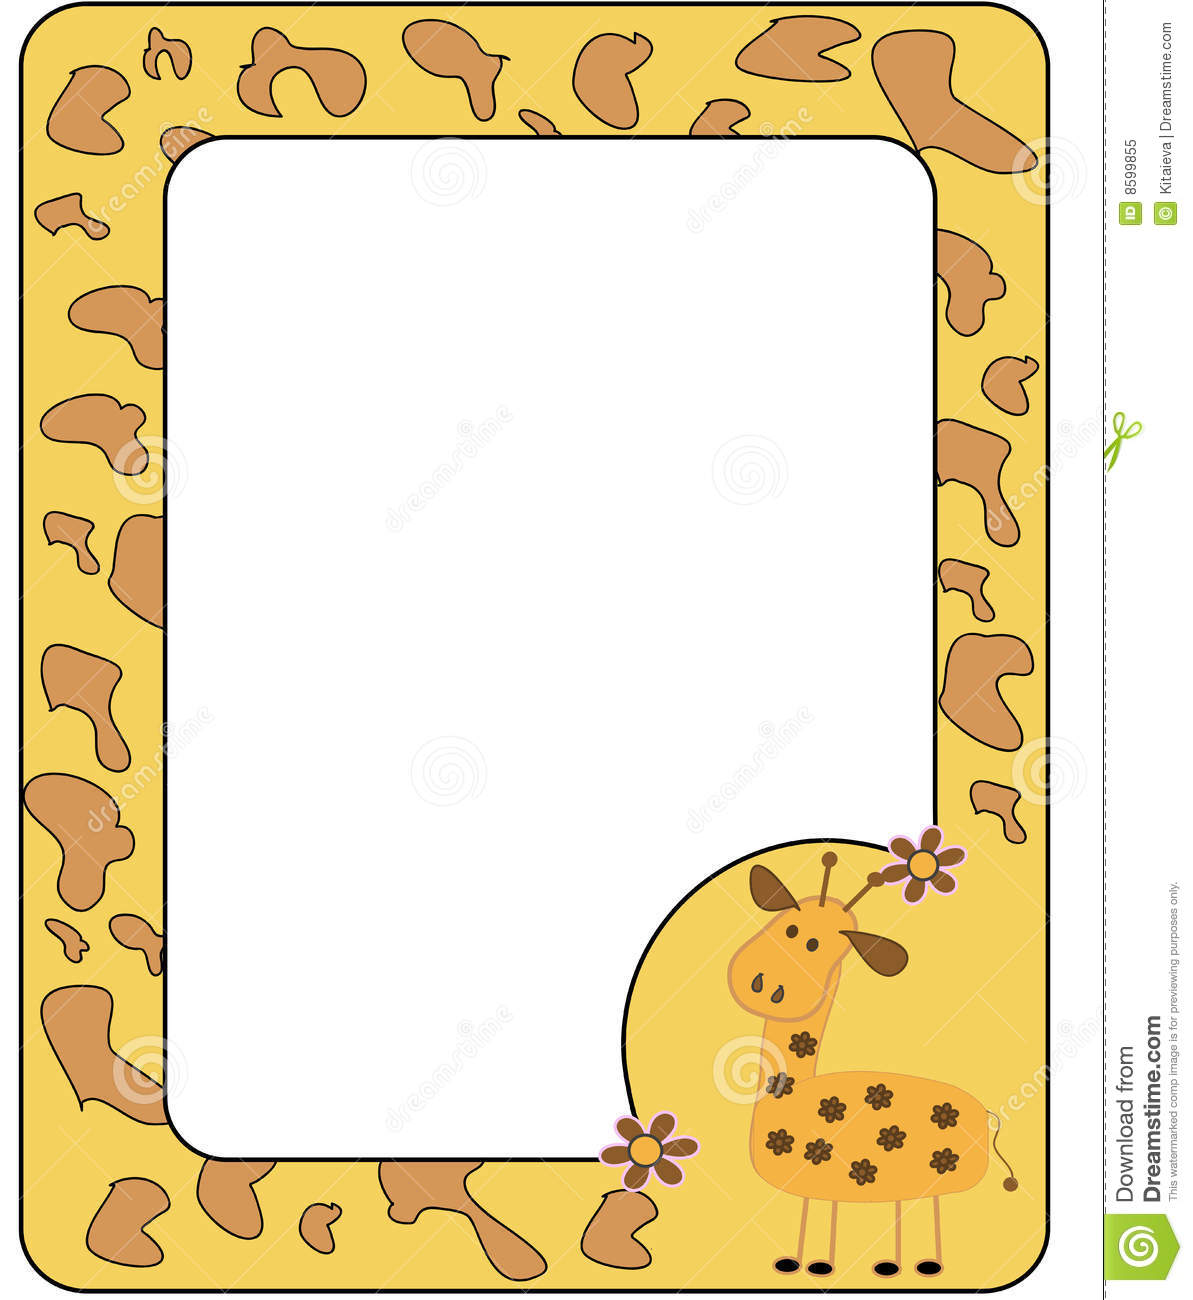 Frame With Giraffe Royalty Free Stock Photo Image 8599855